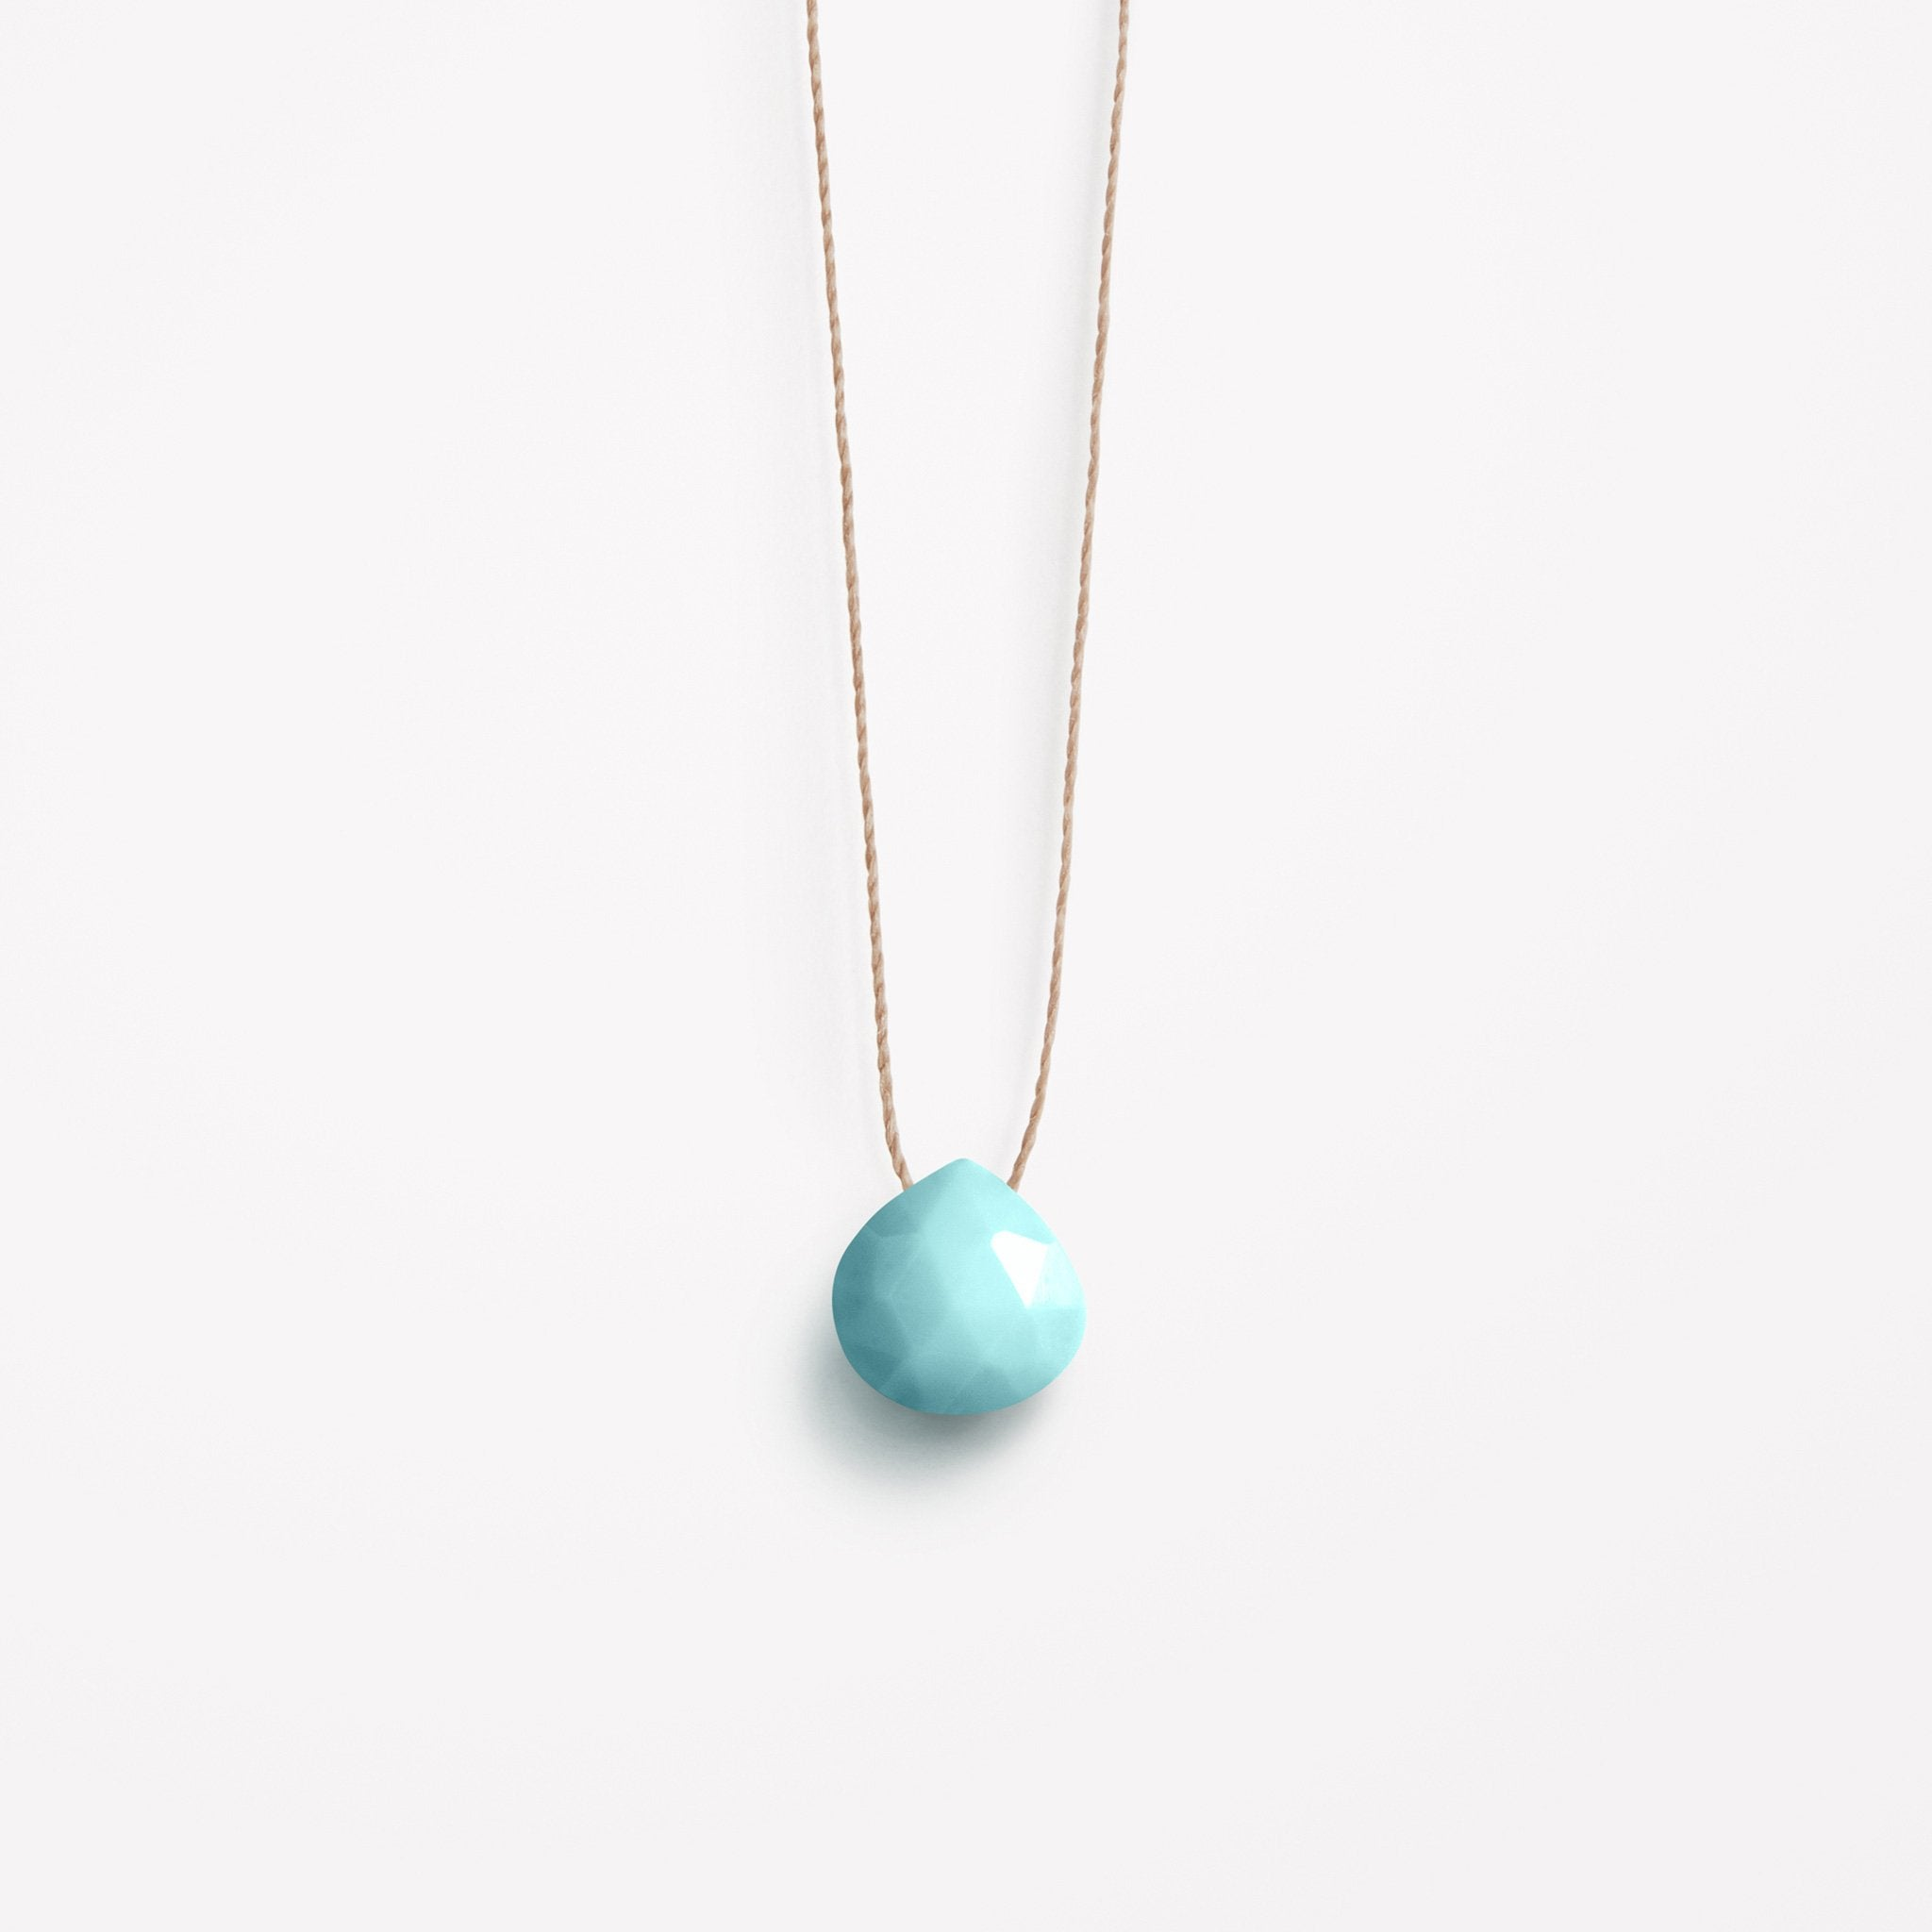 Wanderlust Life Ethically Handmade jewellery made in the UK. Minimalist gold and fine cord jewellery. arizona turquoise fine cord necklace